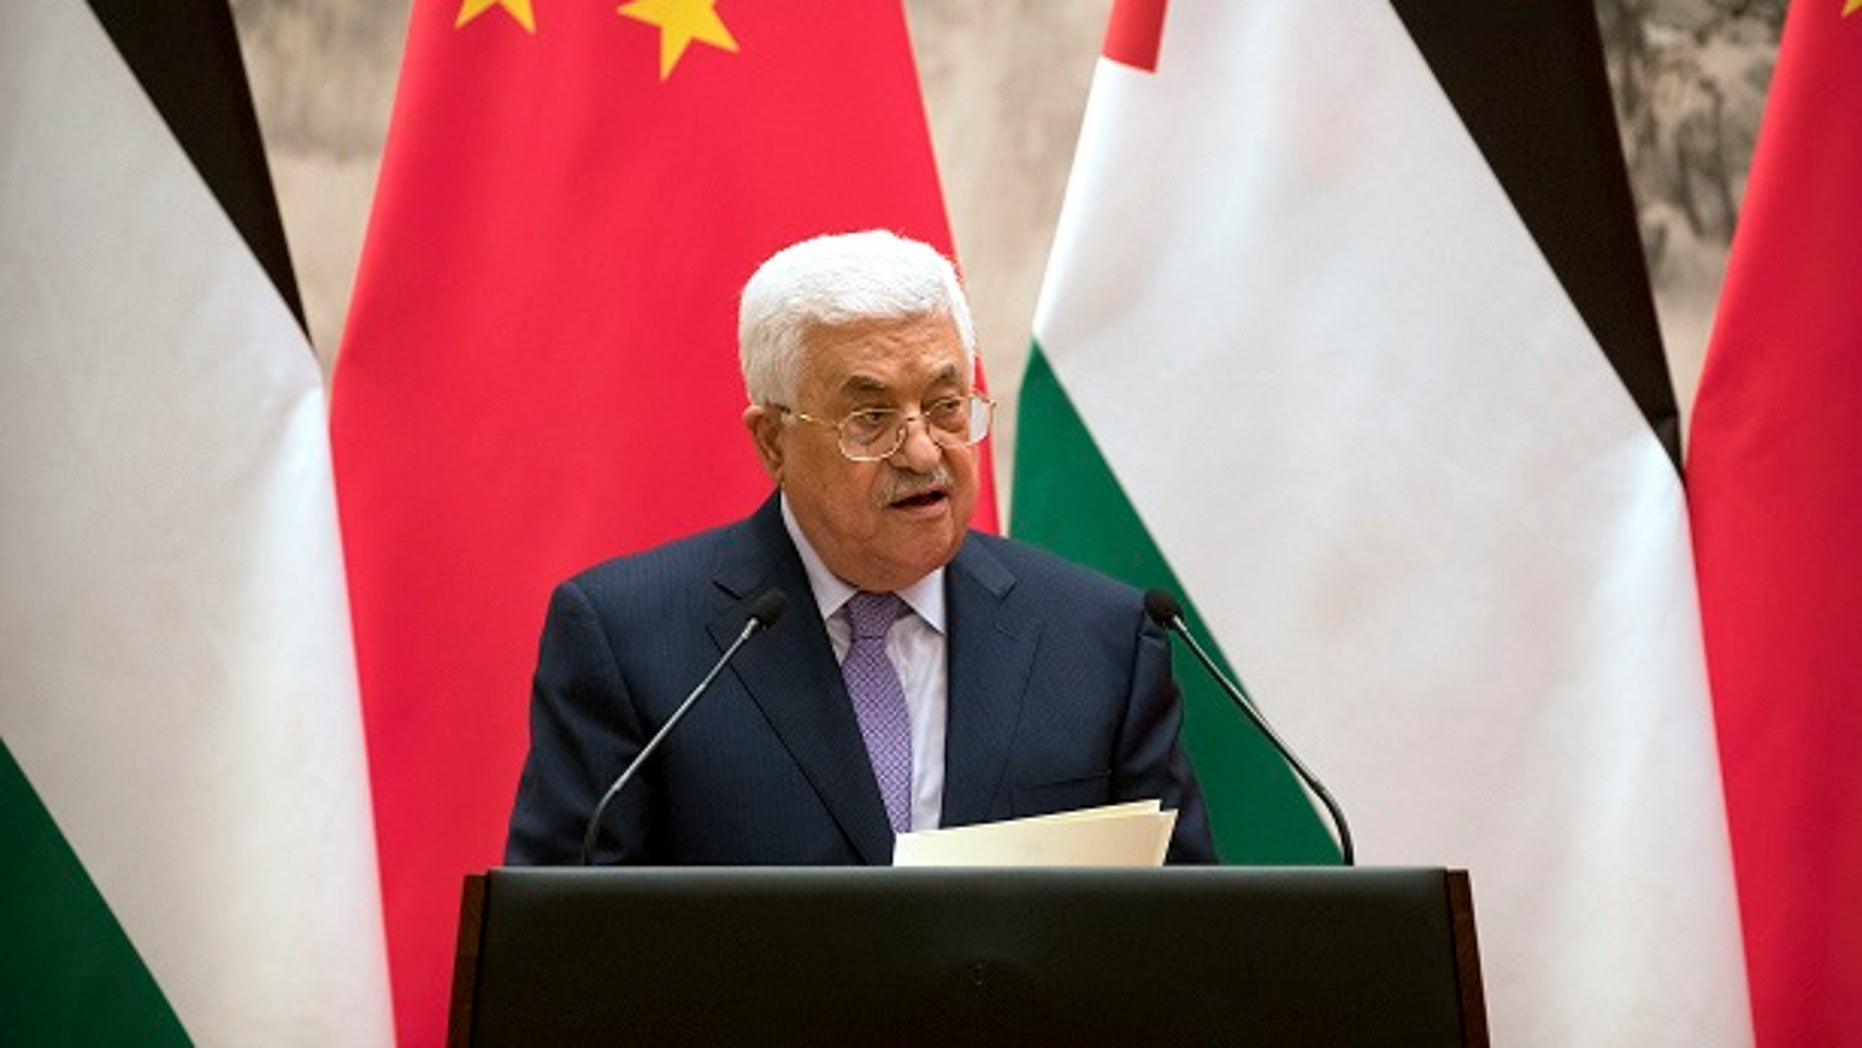 Palestinian President Mahmoud Abbas is in the hospital for a routine checkup, his spokesperson said.